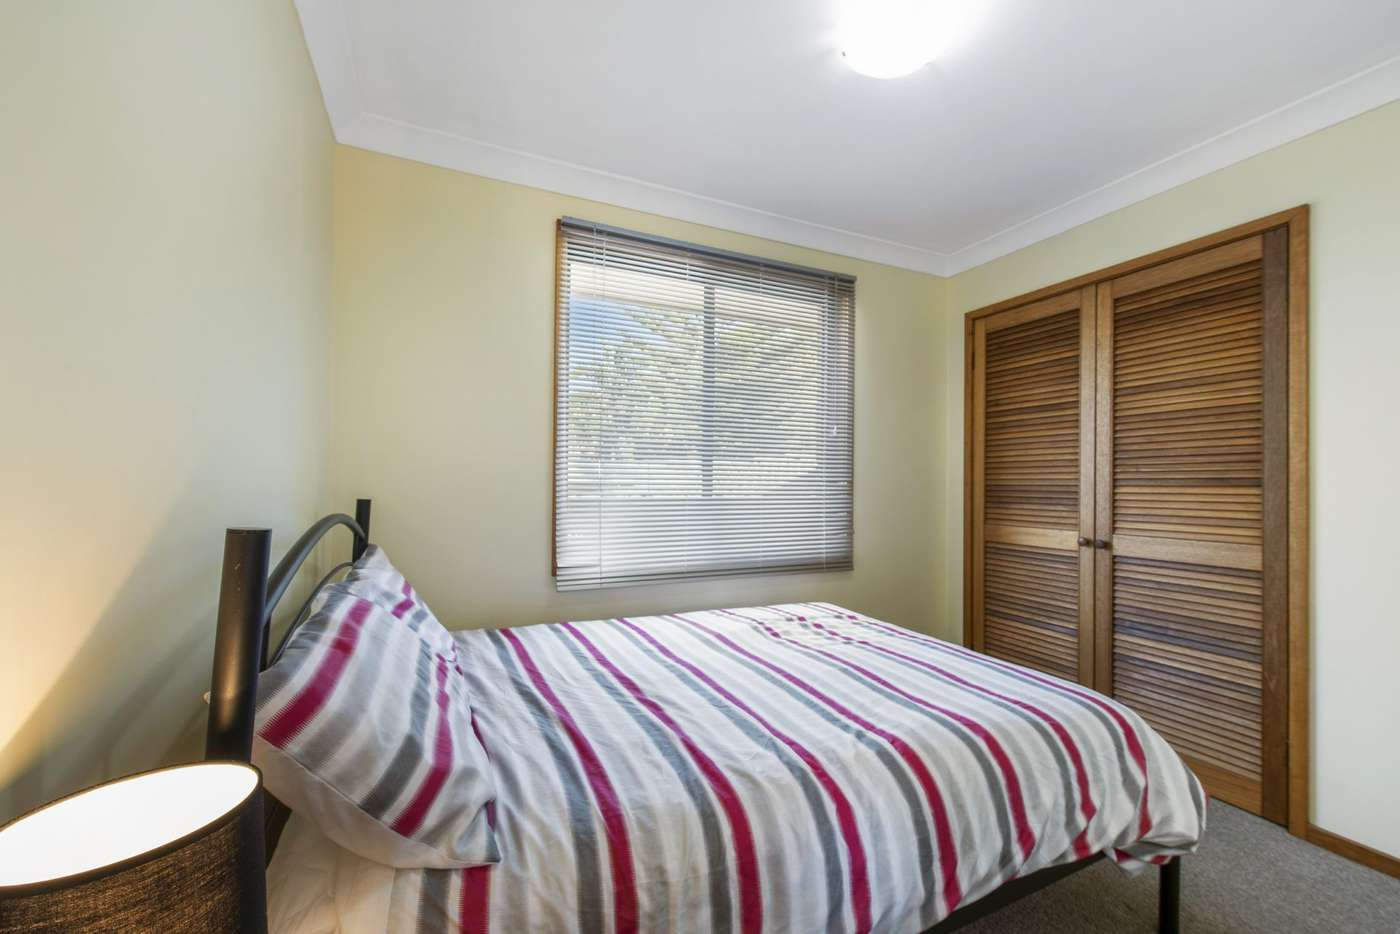 Seventh view of Homely house listing, 29 Buckland Street, Mollymook NSW 2539